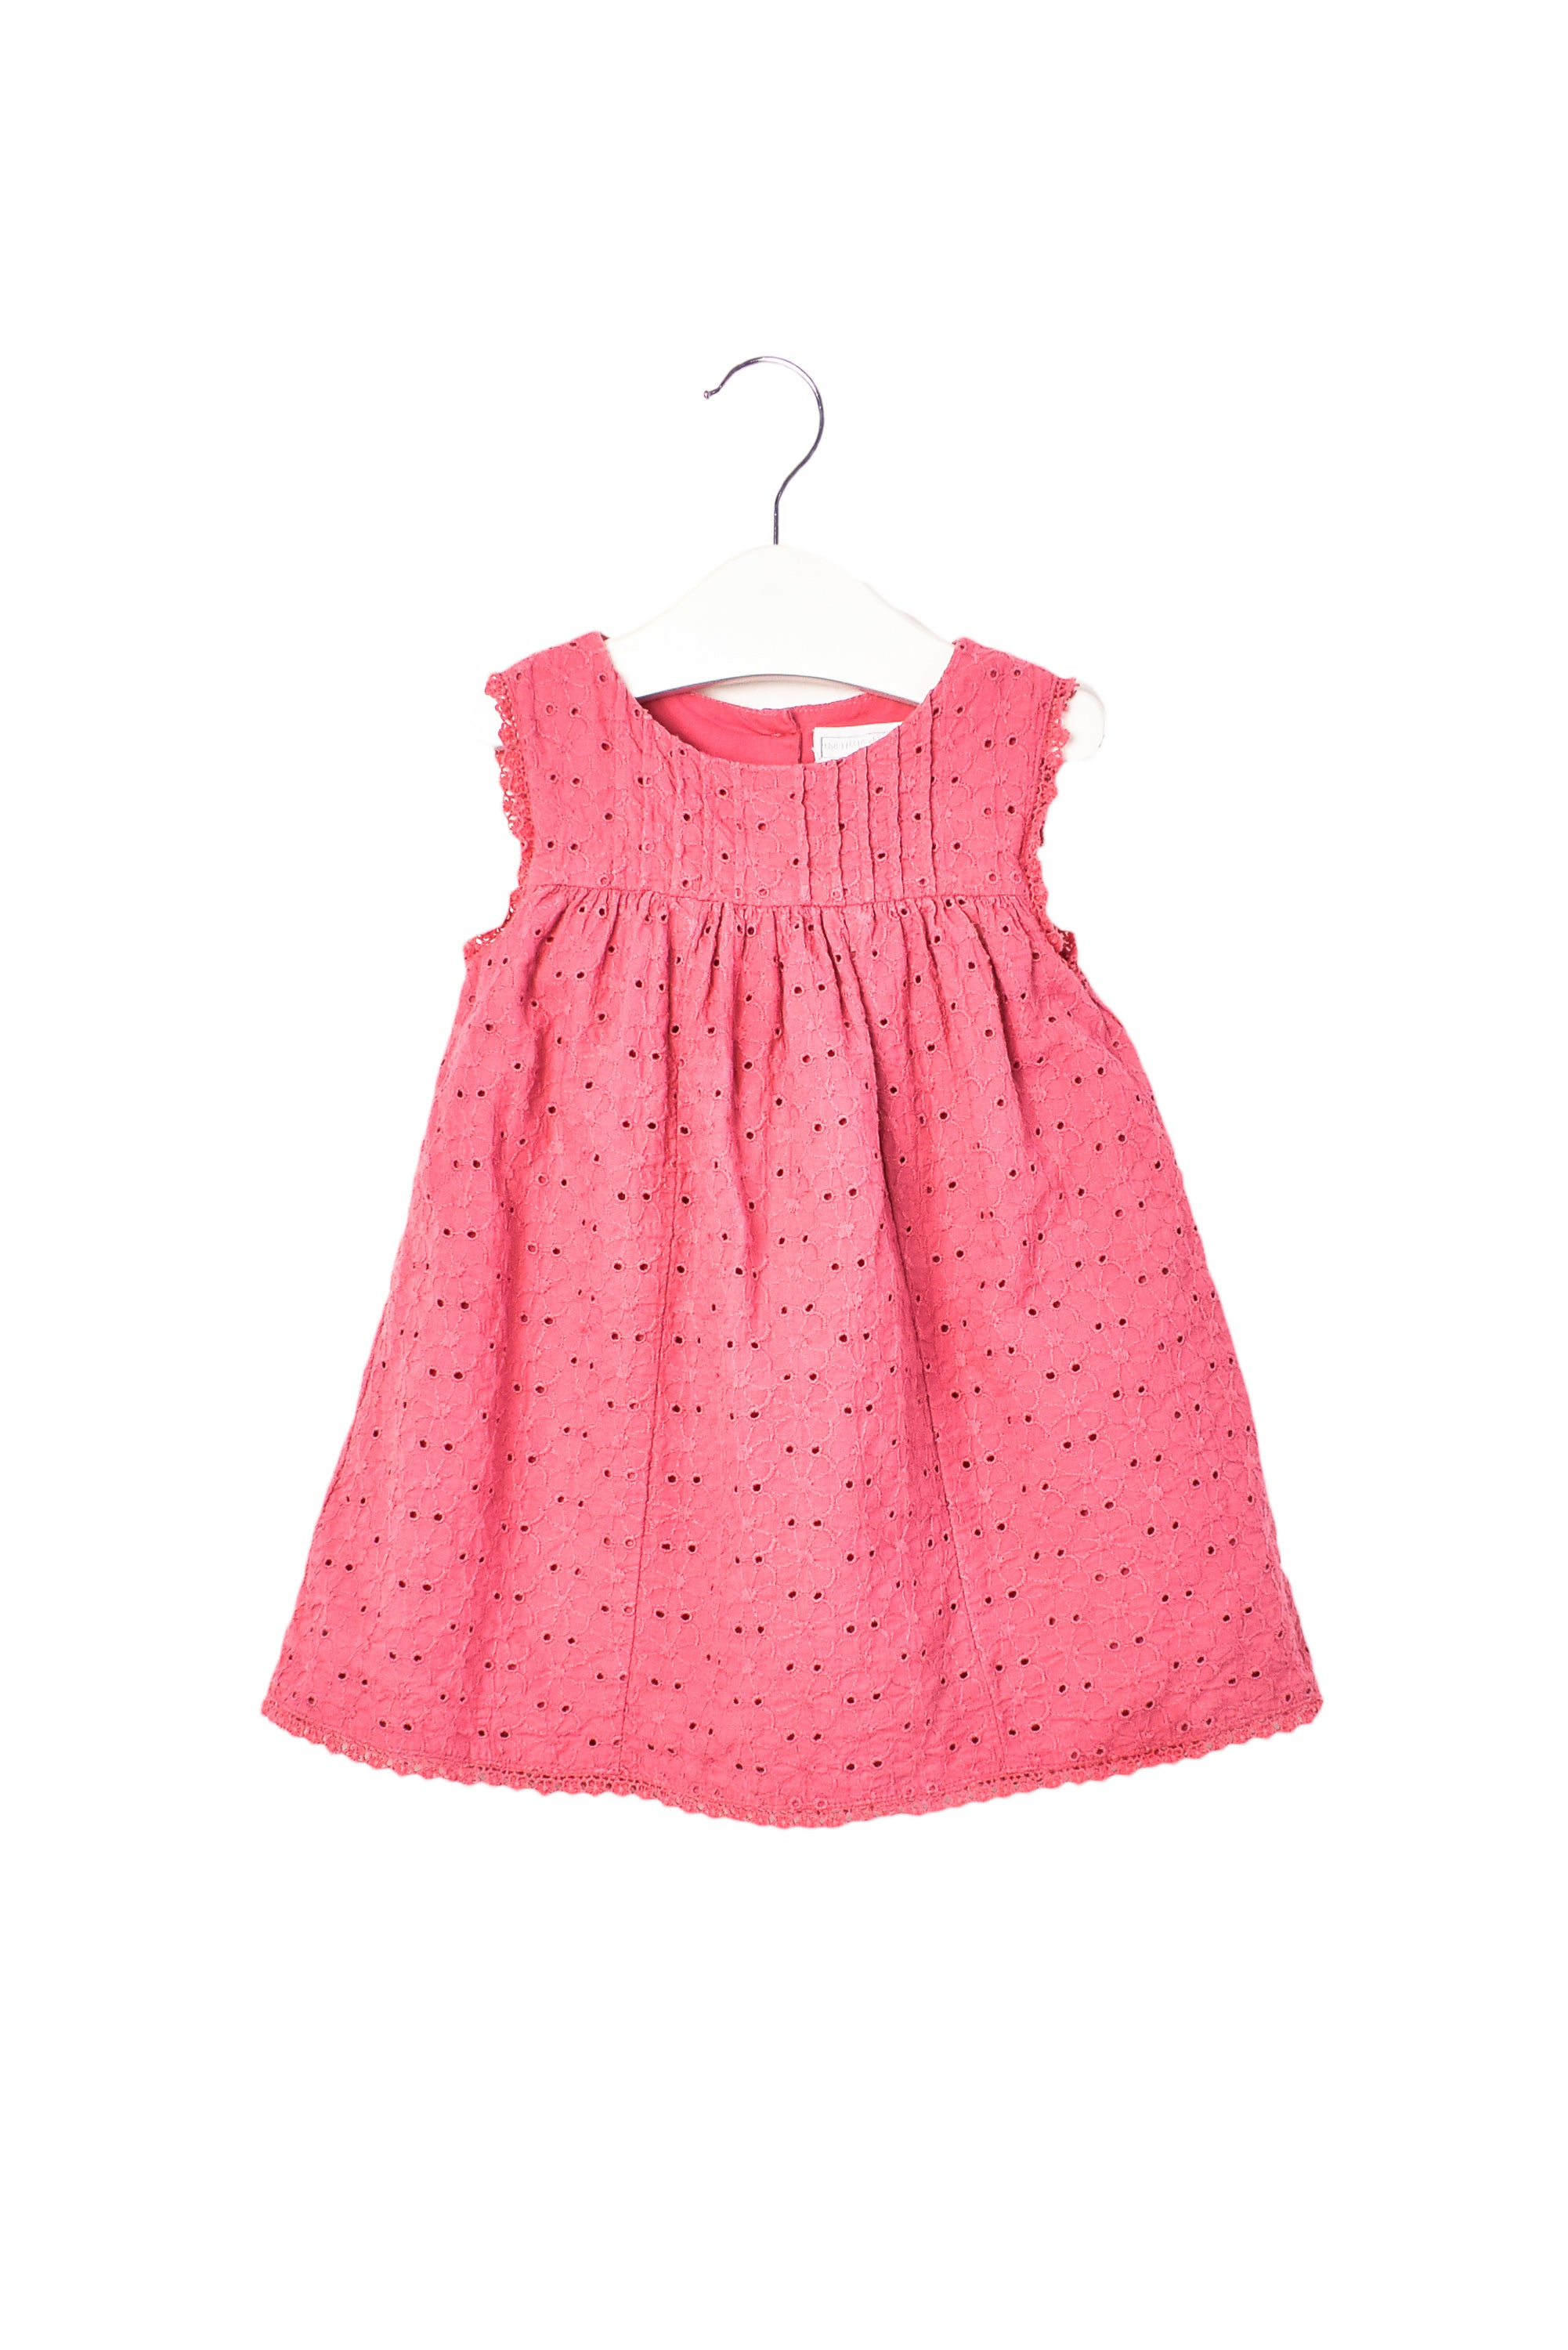 10006302 The Little White Company Baby~Dress 6-9M at Retykle